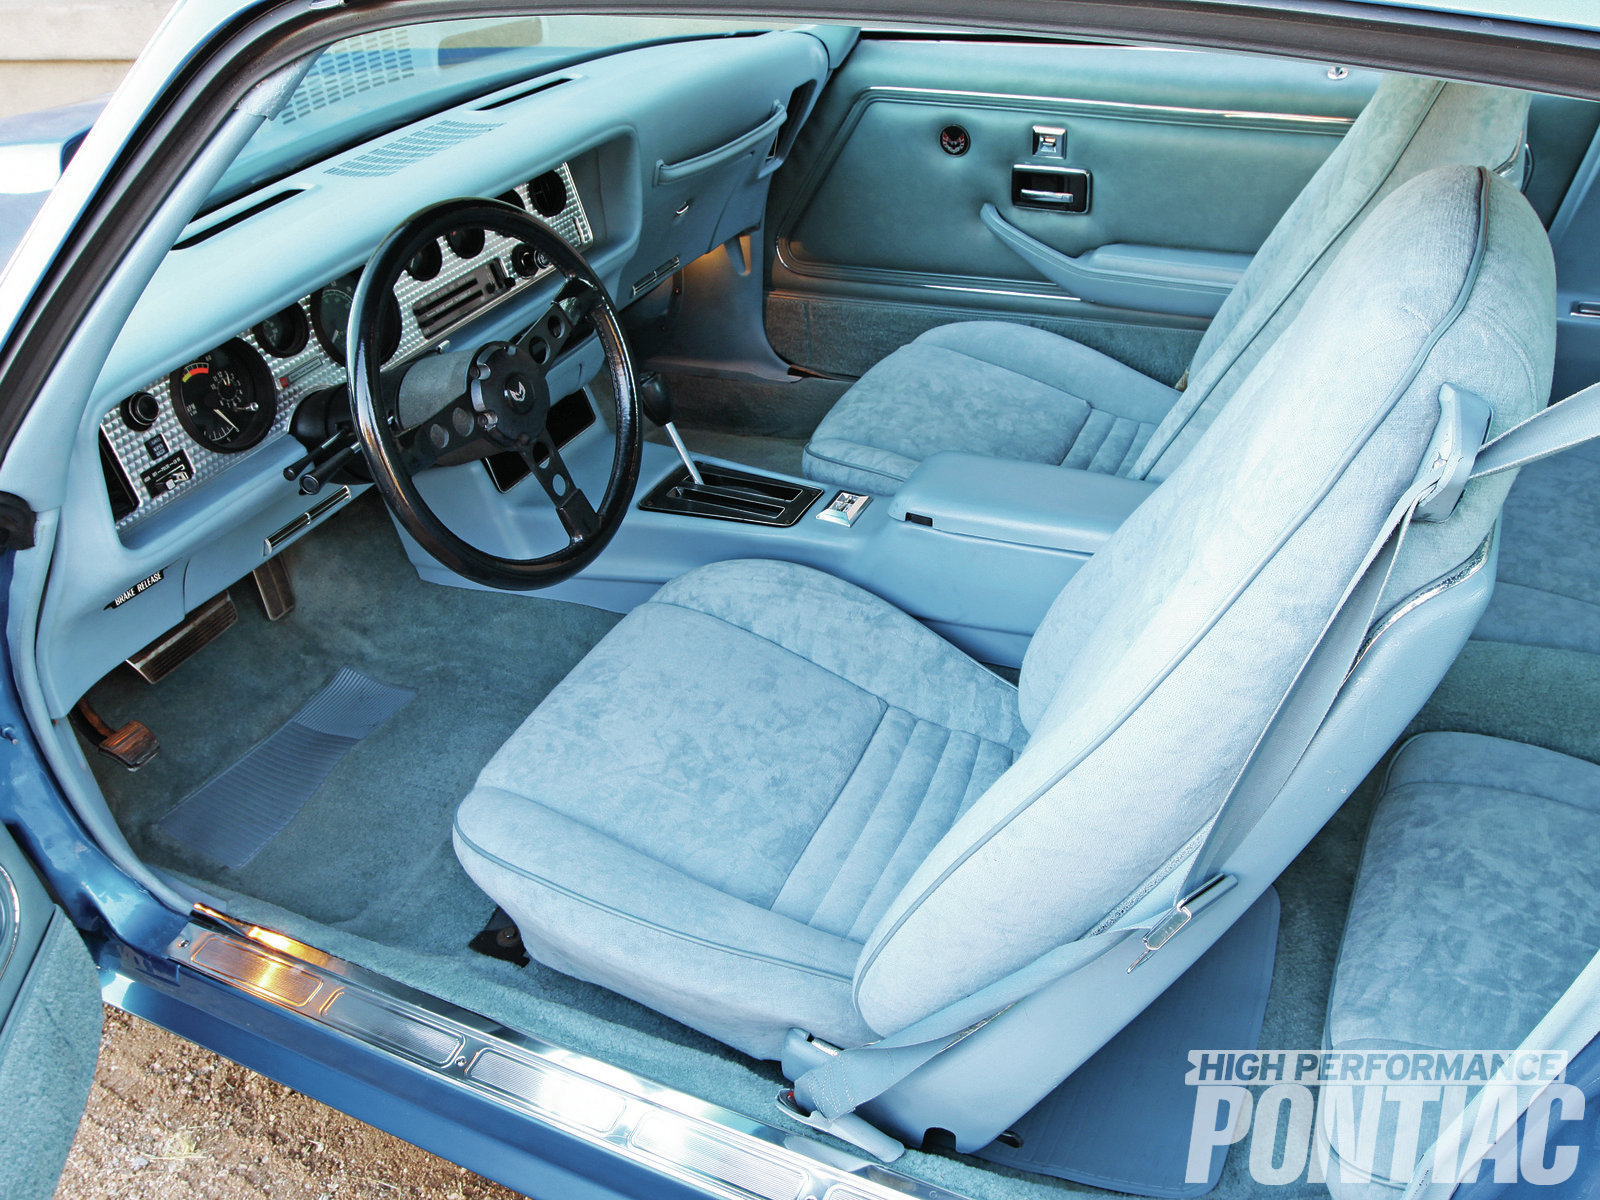 The Turbo 350 automatic was no charge, but the Custom Trim Group (with the tuxedo-blue velour seats, among other additions) cost $134, the stereo tape deck was a shocking $324, the tilt wheel was $69, the lamp group was $18, and air conditioning was a whopping $508.